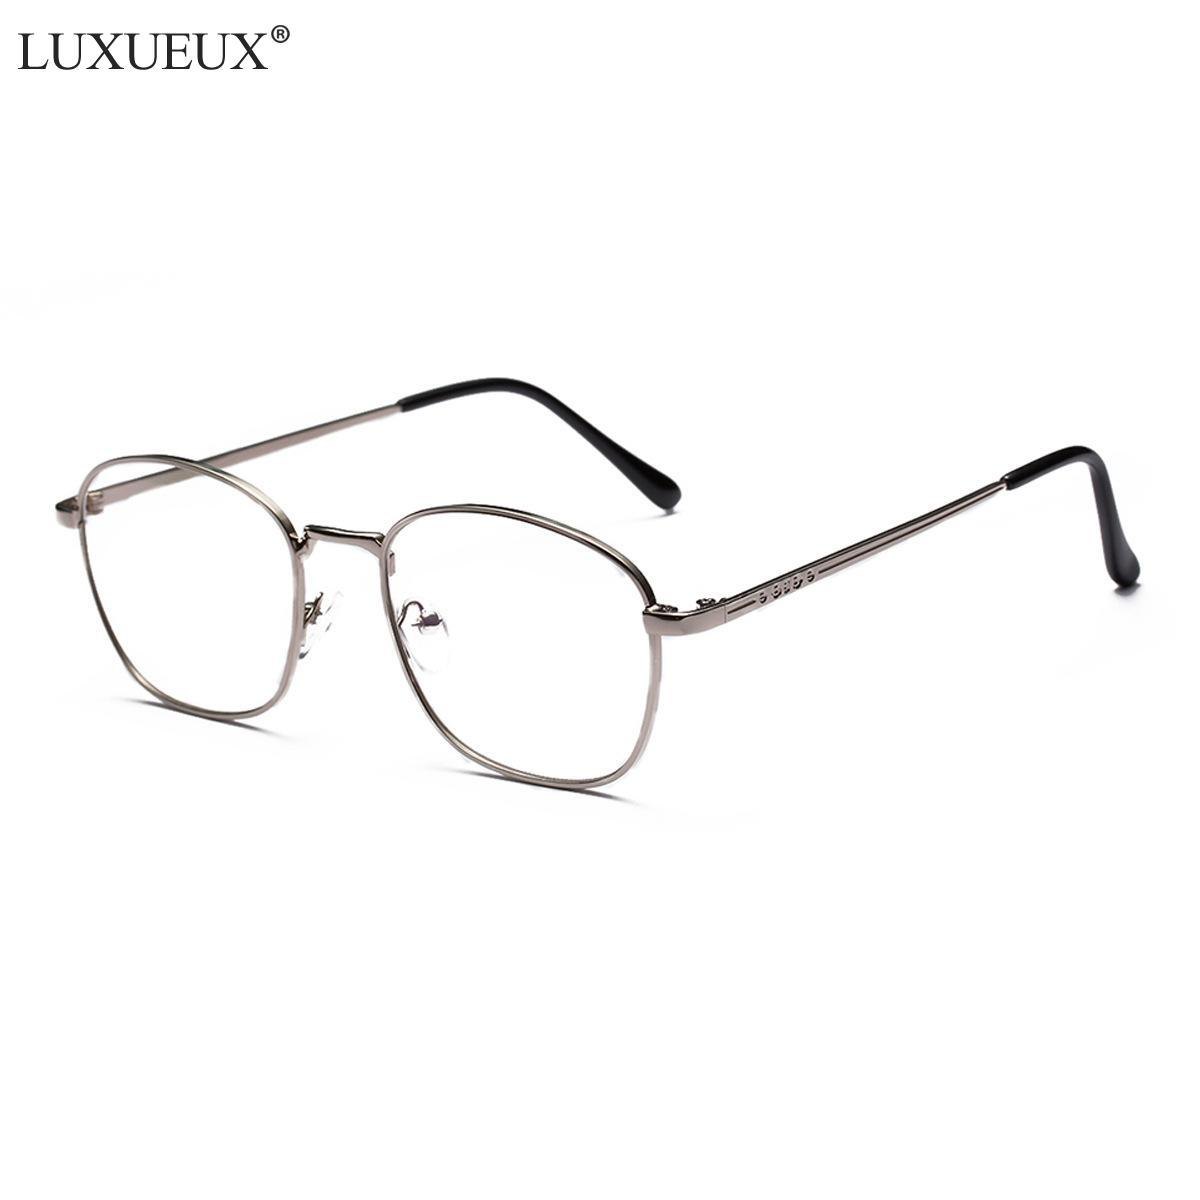 742734dc48 2019 Fashion Metal Flat Clear Lens Eyewear Student Computer New Small Box Myopia  Eye Glasses Frames For Men Women Vintage Glasses From Vintage66